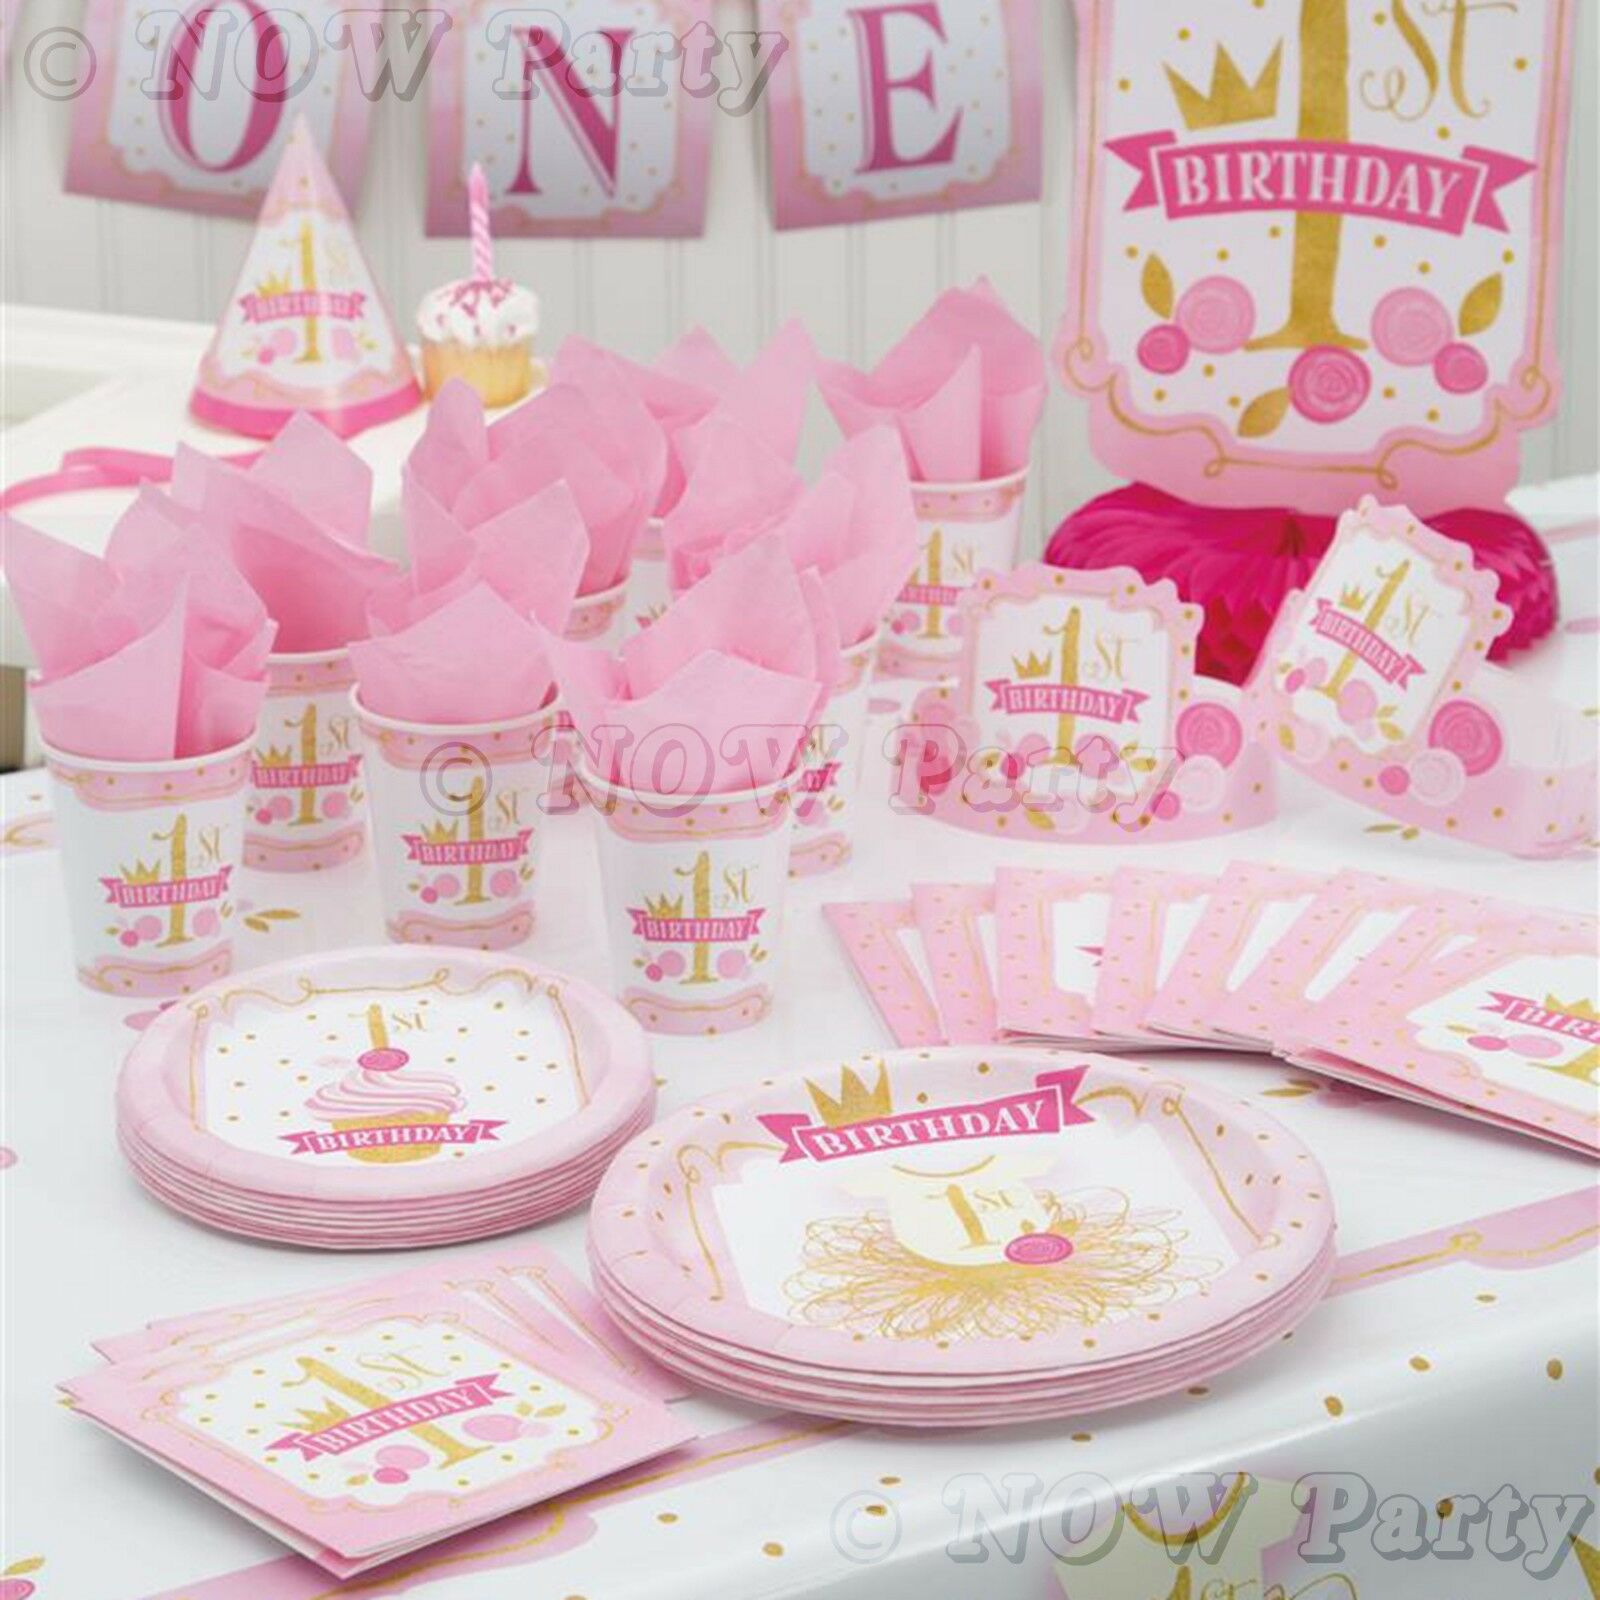 1ST FIRST BIRTHDAY Girls Pink & Gold Party Supplies Tableware ...